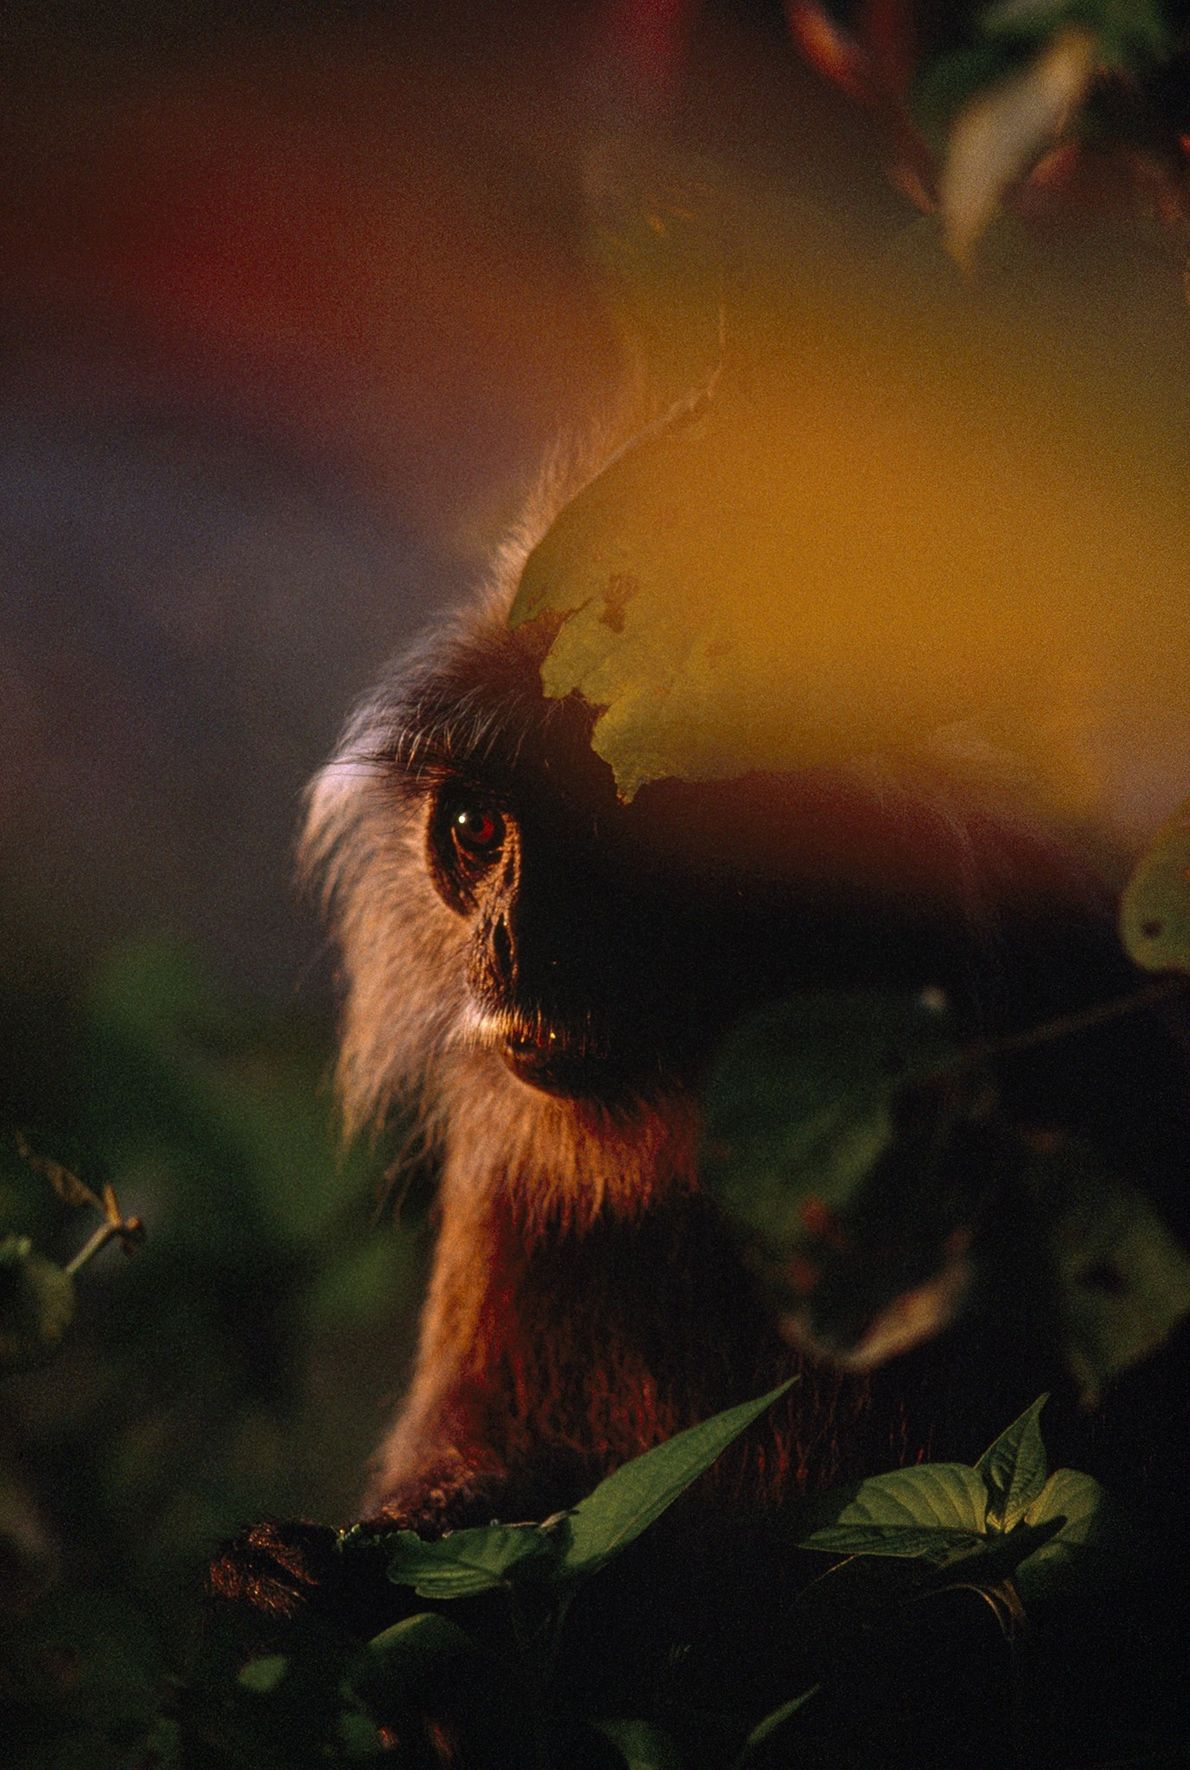 After weeks of rain, precious light penetrates the trees at sunset, burnishing a silvered leaf monkey ...